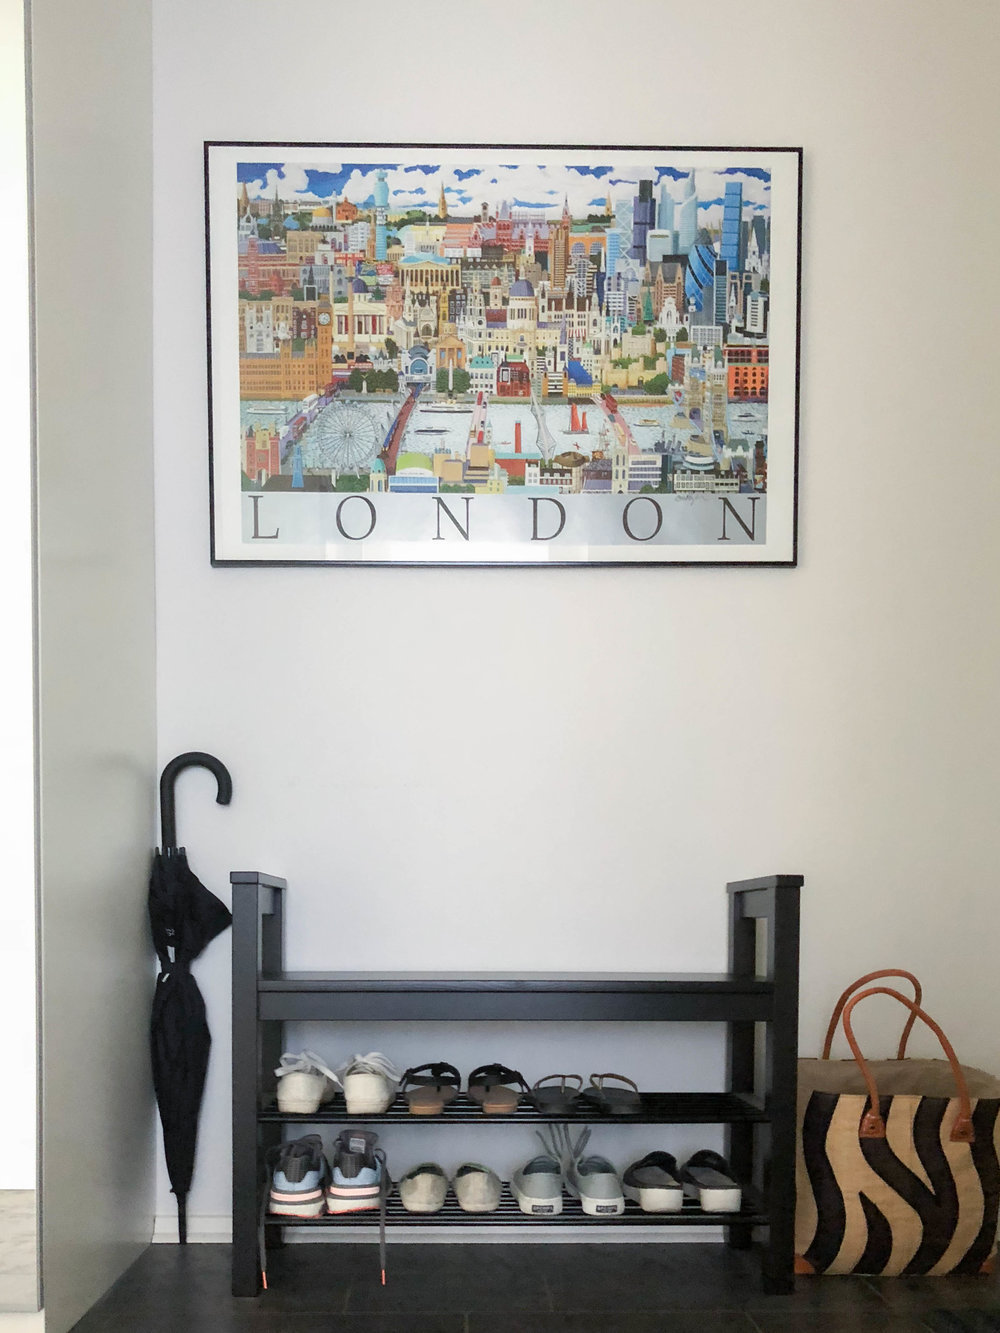 This is where I put the shoes that I usually wear. - To make it easier to clean the apartment, the shoes can only go up to that point. The bag is where I put the newspapers, magazines and mails that I receive almost every single day. Also, My landlord is from the UK. Thus, the London print.